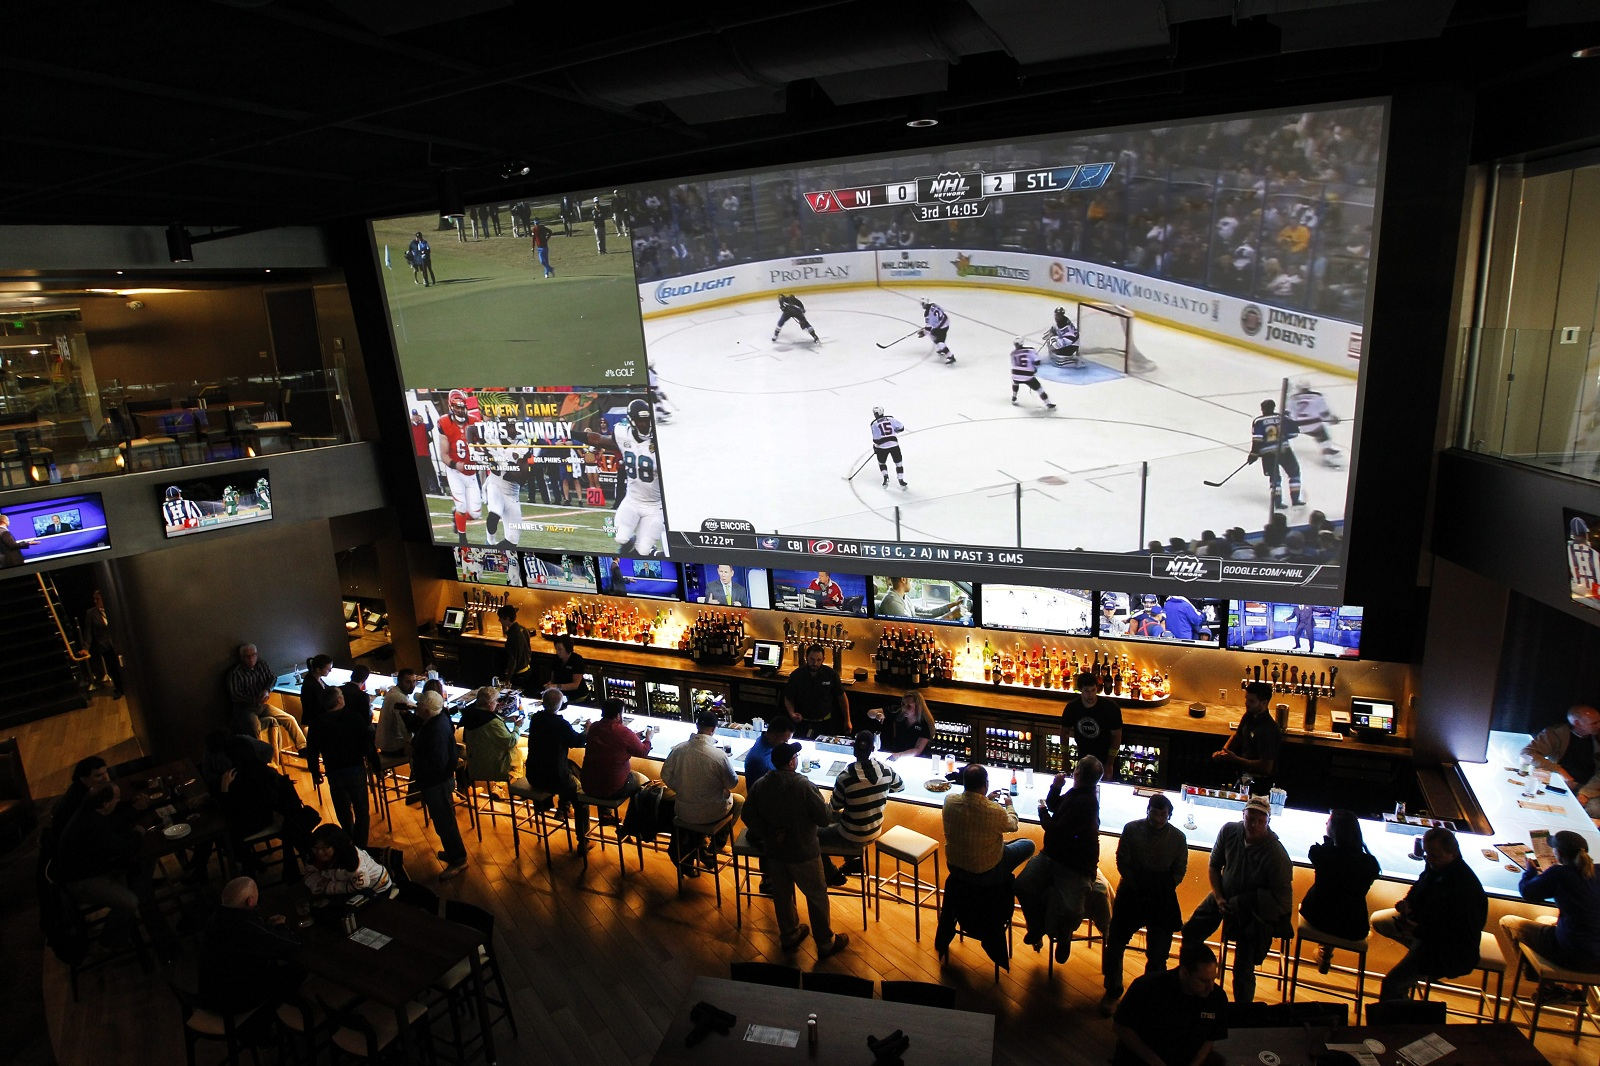 The 38-foot TV screen inside (716) is a major draw for Sabres and Bills fans. (Sharon Cantillon/Buffalo News file photo)